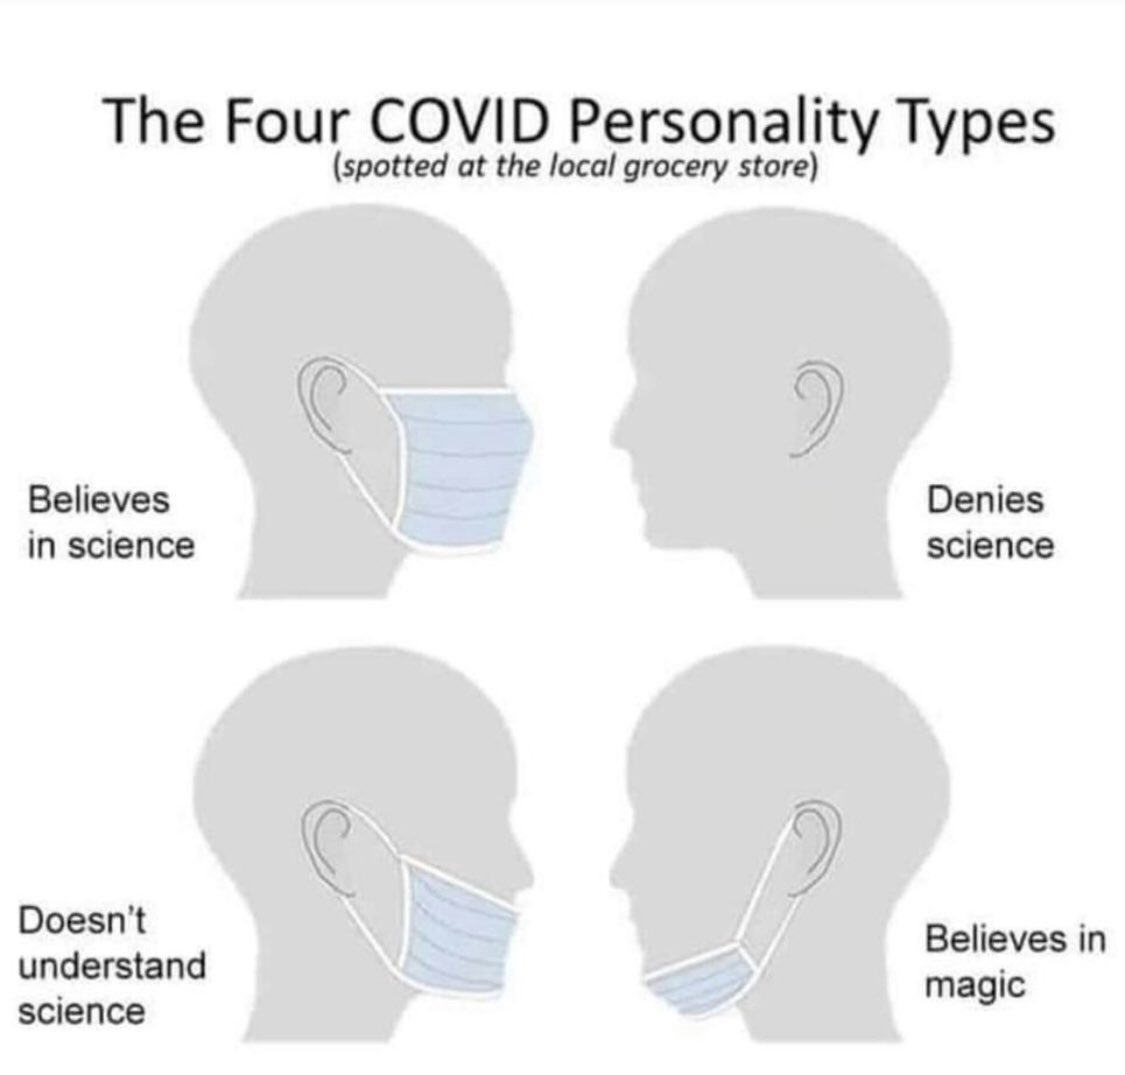 The Four COVID Personality Types bit.ly/32HcAMd